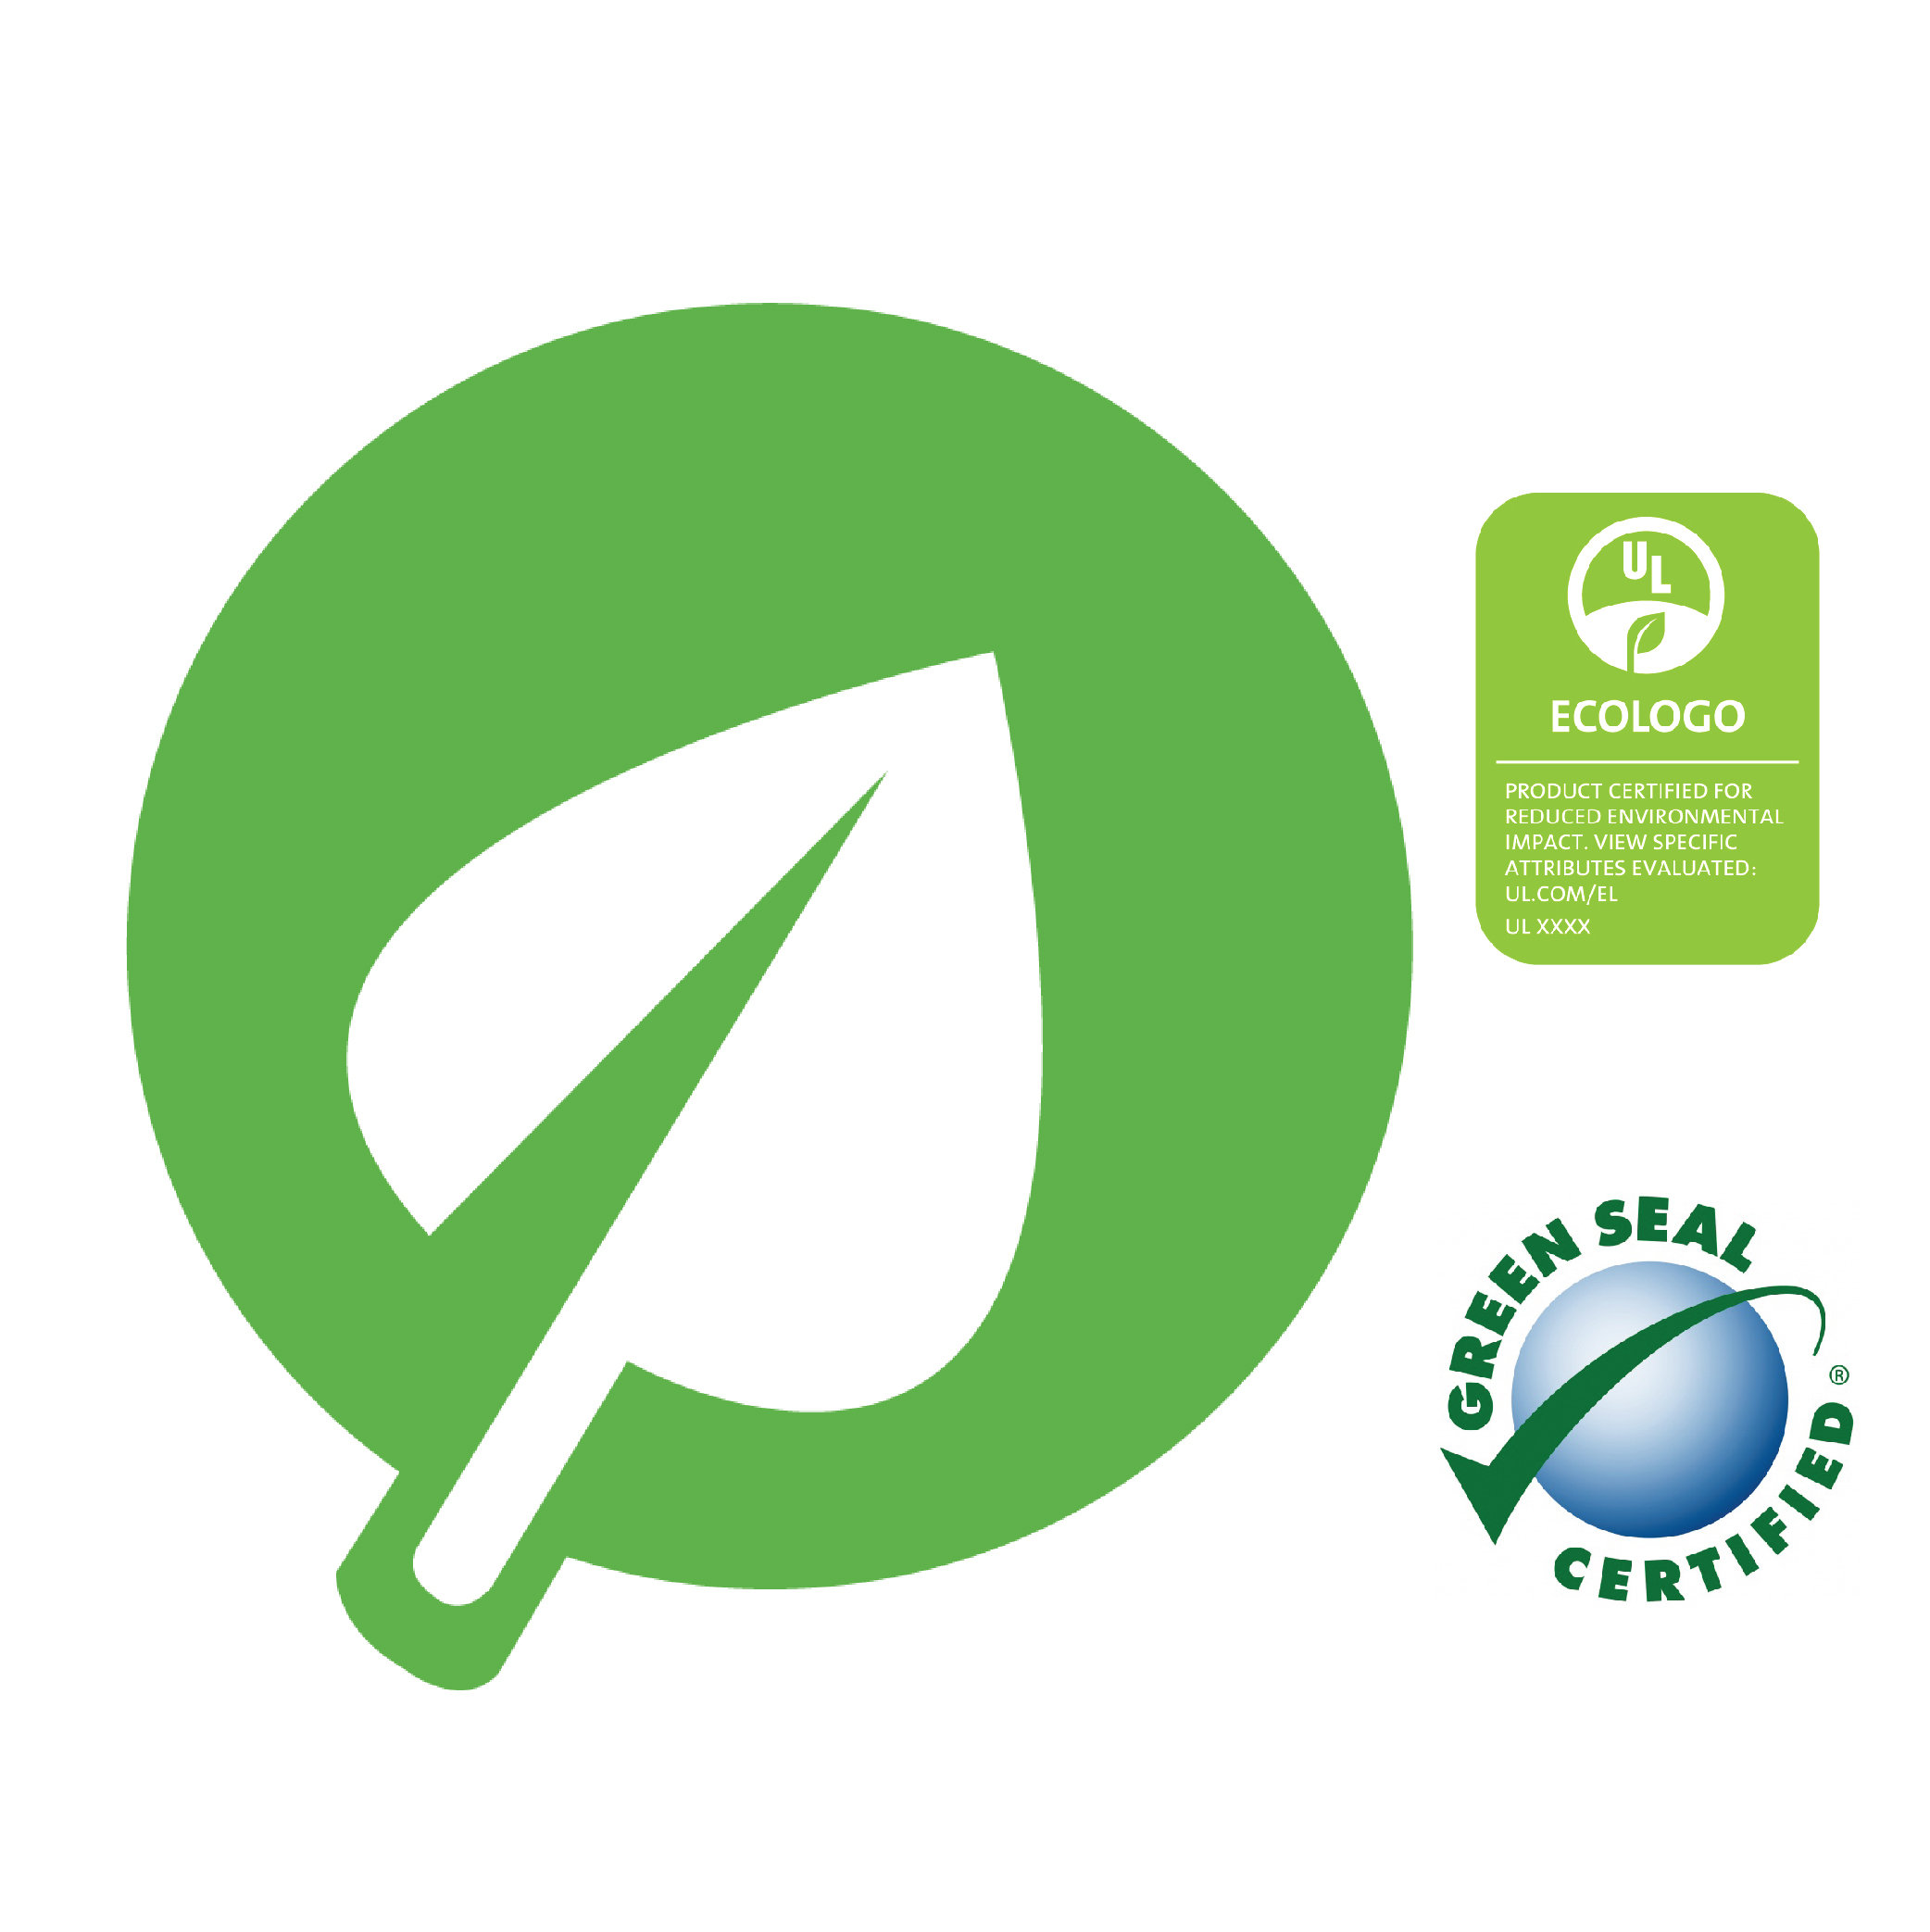 Green cleaning products! - Have peace of mind that your facility will be clean and green! Bison Janitorial carries a full line of environmentally friendly washroom products.Eco-friendlygarbage bags and chemical dispensing systems allow us to reduce your buildings footprint on the environment.